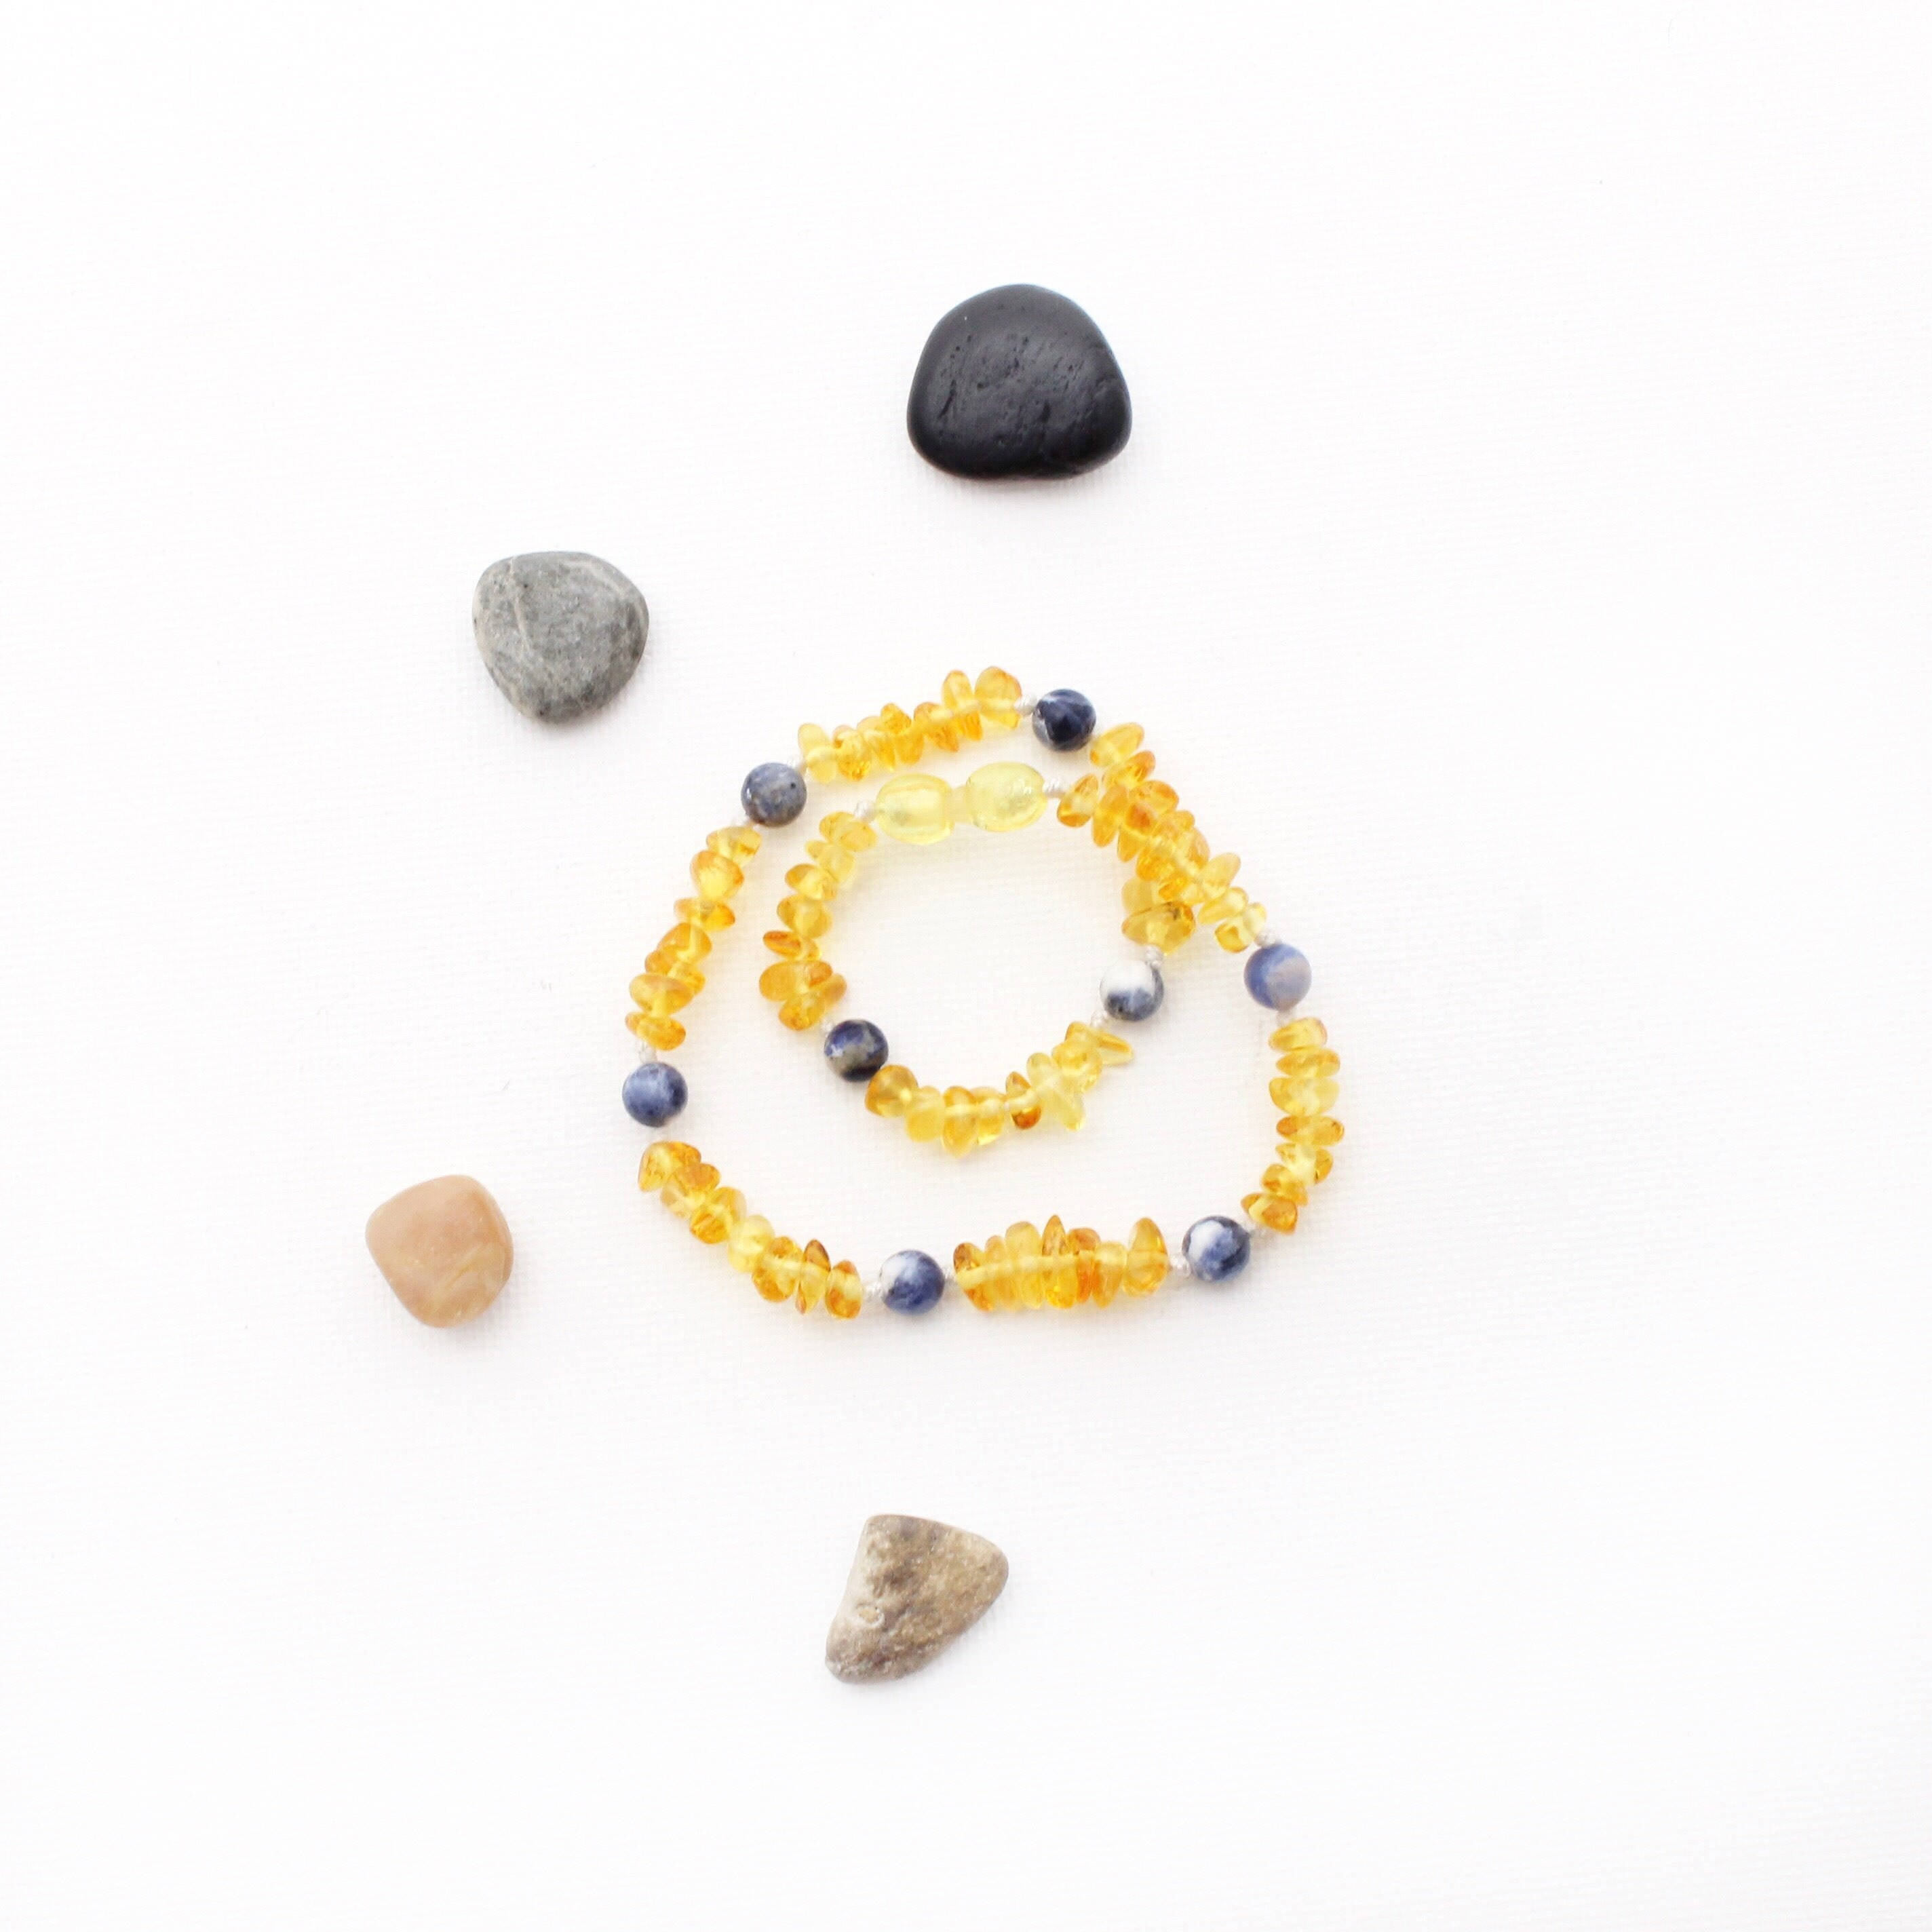 Lemon Amber and Sodalite Teething Necklace